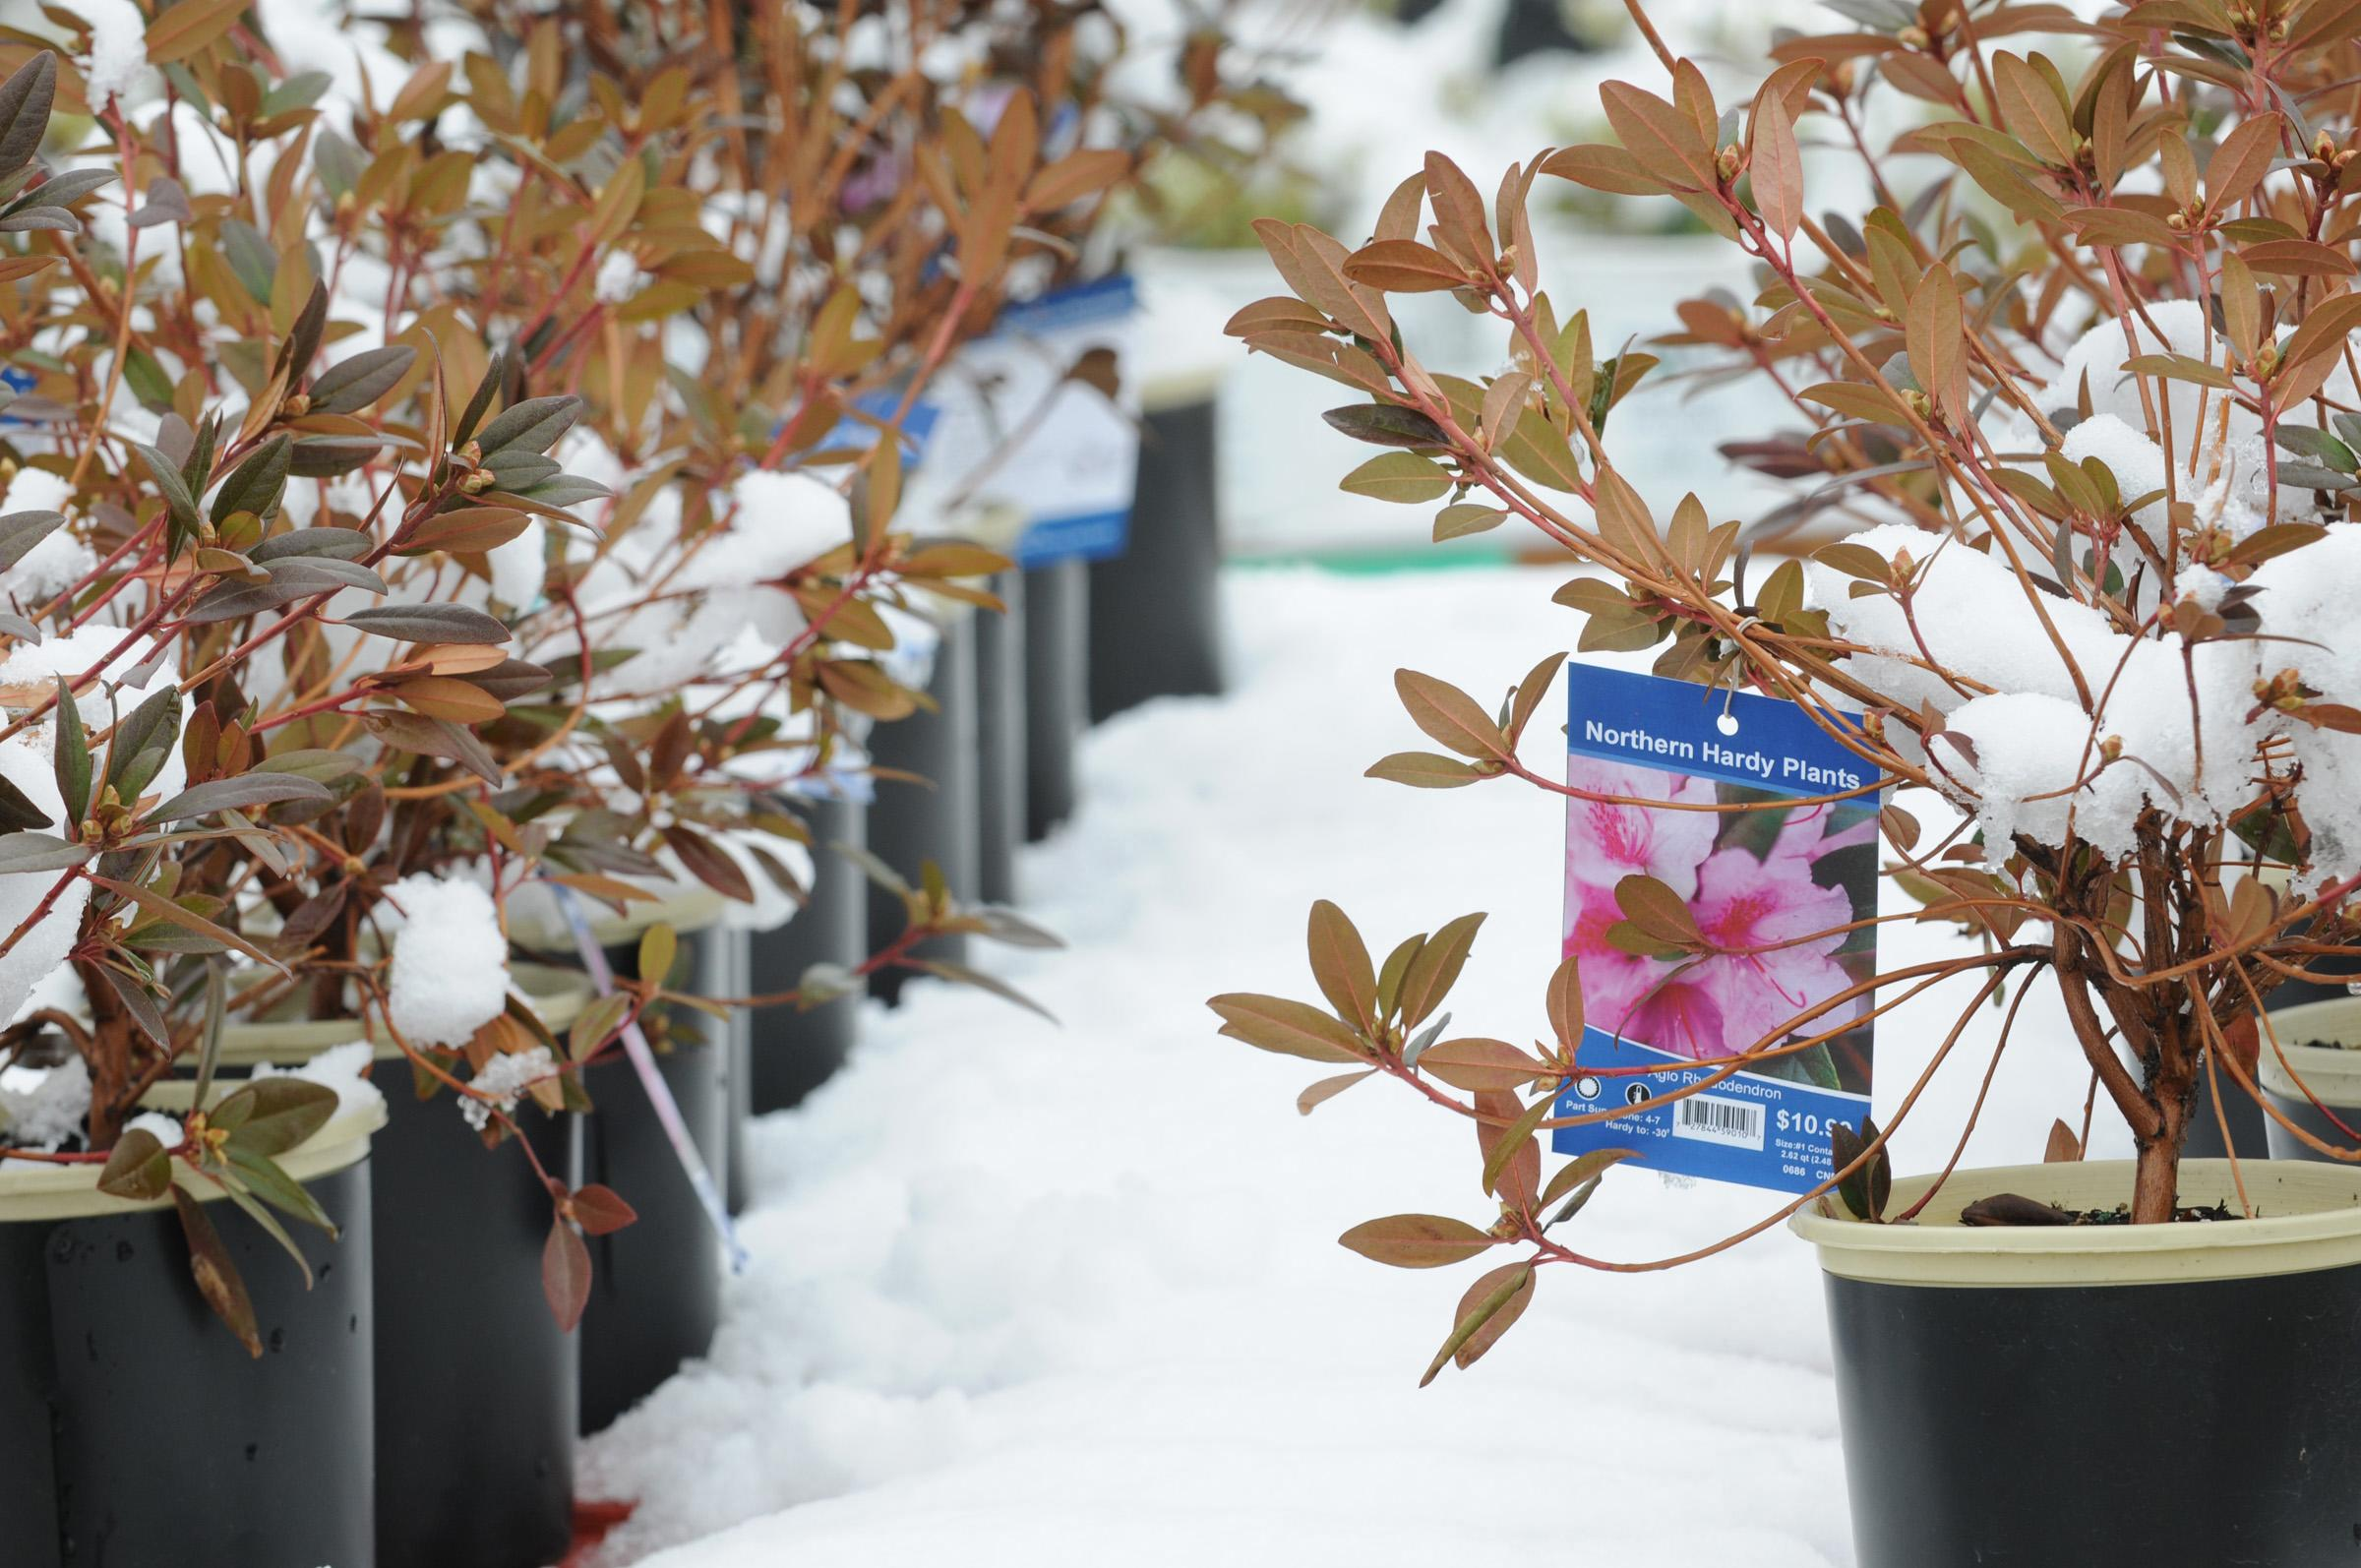 FILE - In this Friday, May 2, 2013 file photo, rhododendrons at the Garden Center of Cub Foods in Stillwater, Minn. are covered in snow after an early May snowfall. The jet stream's odd meanderings kicked off May with upside-down weather: early California wildfires fueled by heat contrasted with more than a foot of snow in Minnesota. Seattle was the hottest spot in the nation one day, and Maine and Edmonton, Canada were warmer than Miami and Phoenix. (AP Photo/St. Paul Pioneer Press, Jean Pieri)